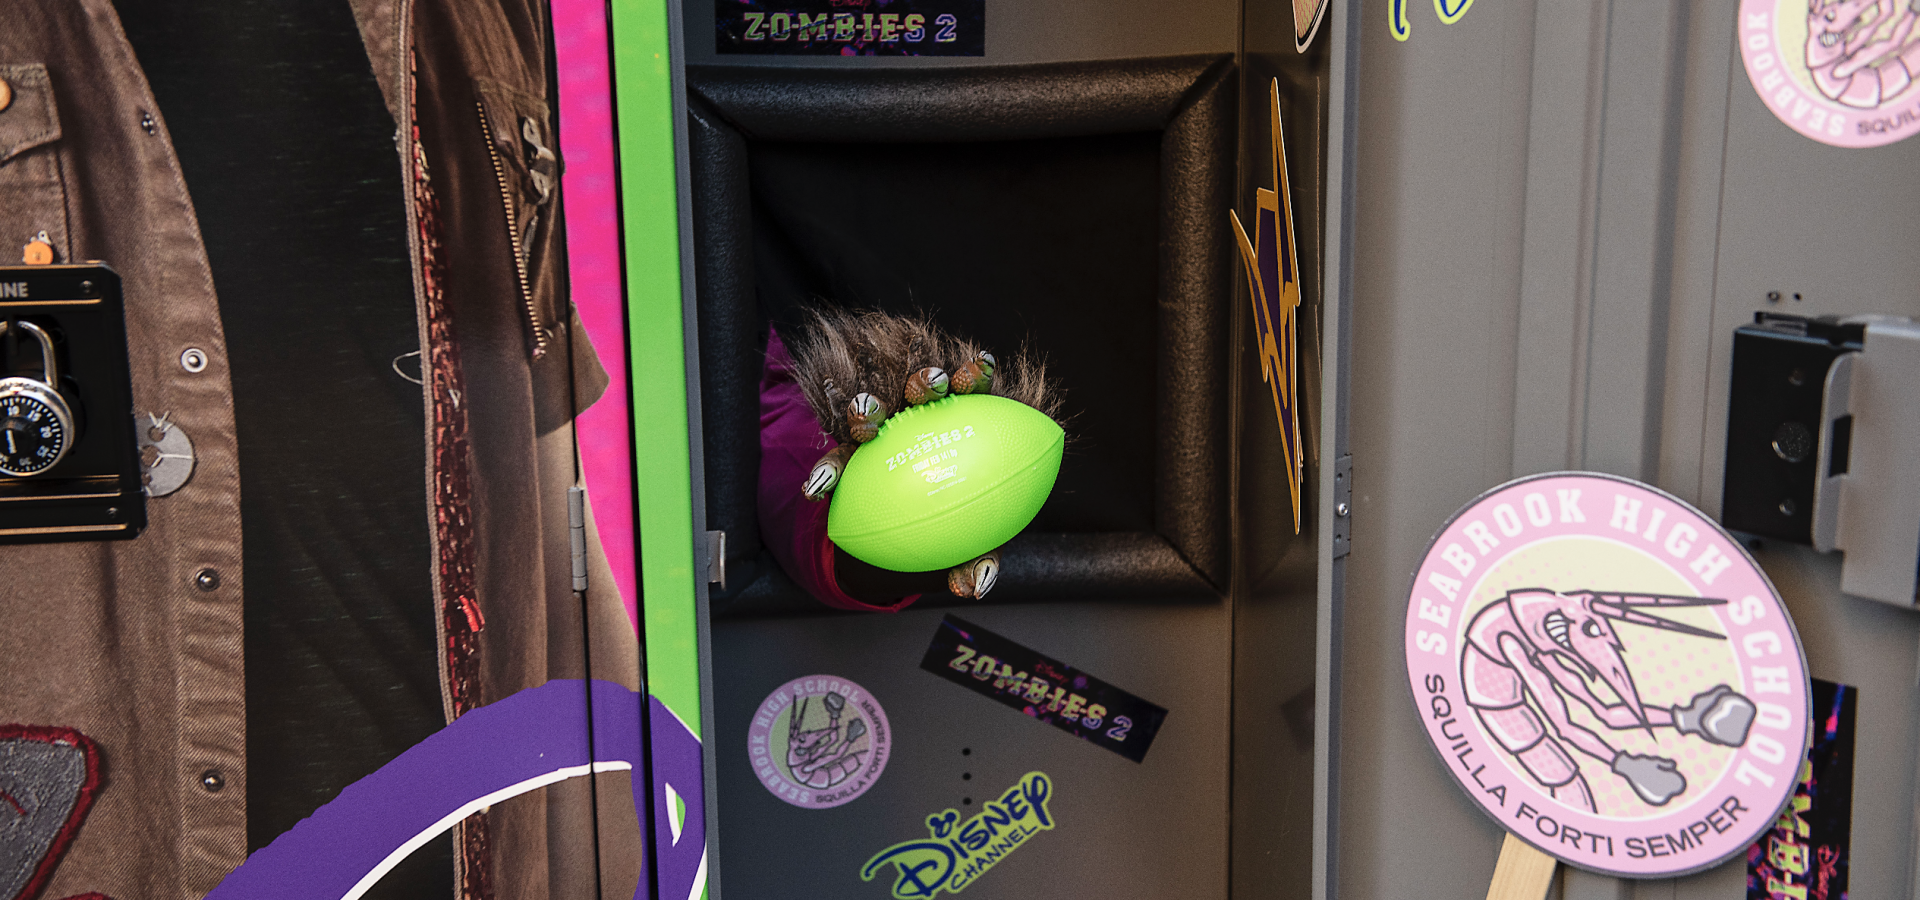 Disney Channel - Surprise Lockers - Experiential Marketing Football Prize